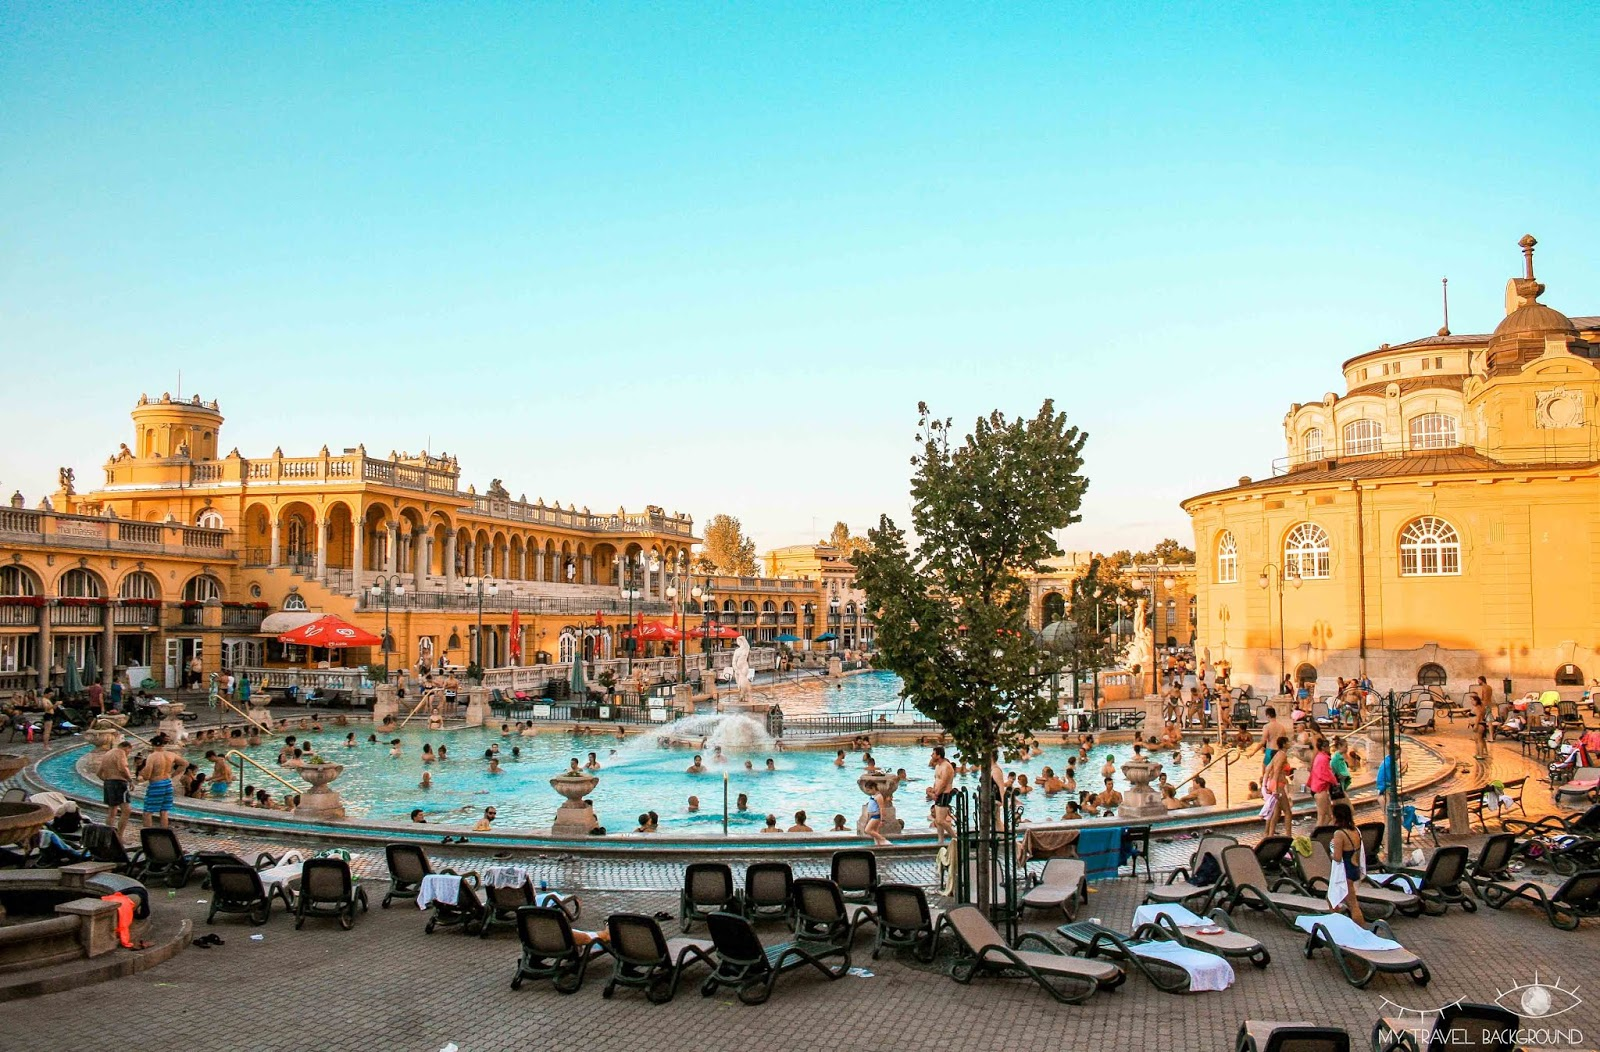 My Travel Background : 1 week-end à Budapest en Hongrie - Les bains Szechenyi